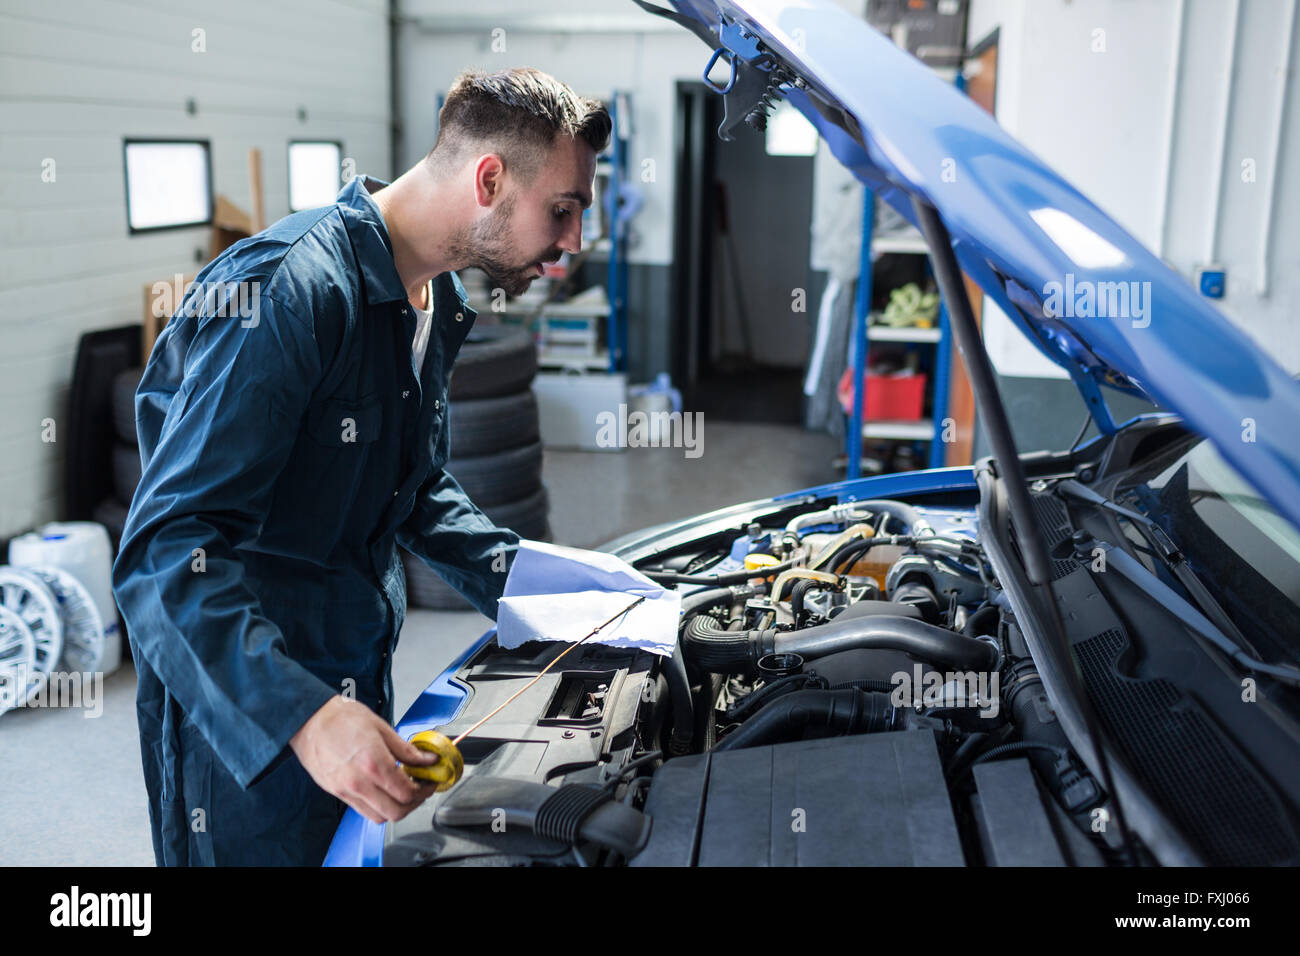 Mechanic checking the oil level in a car engine - Stock Image